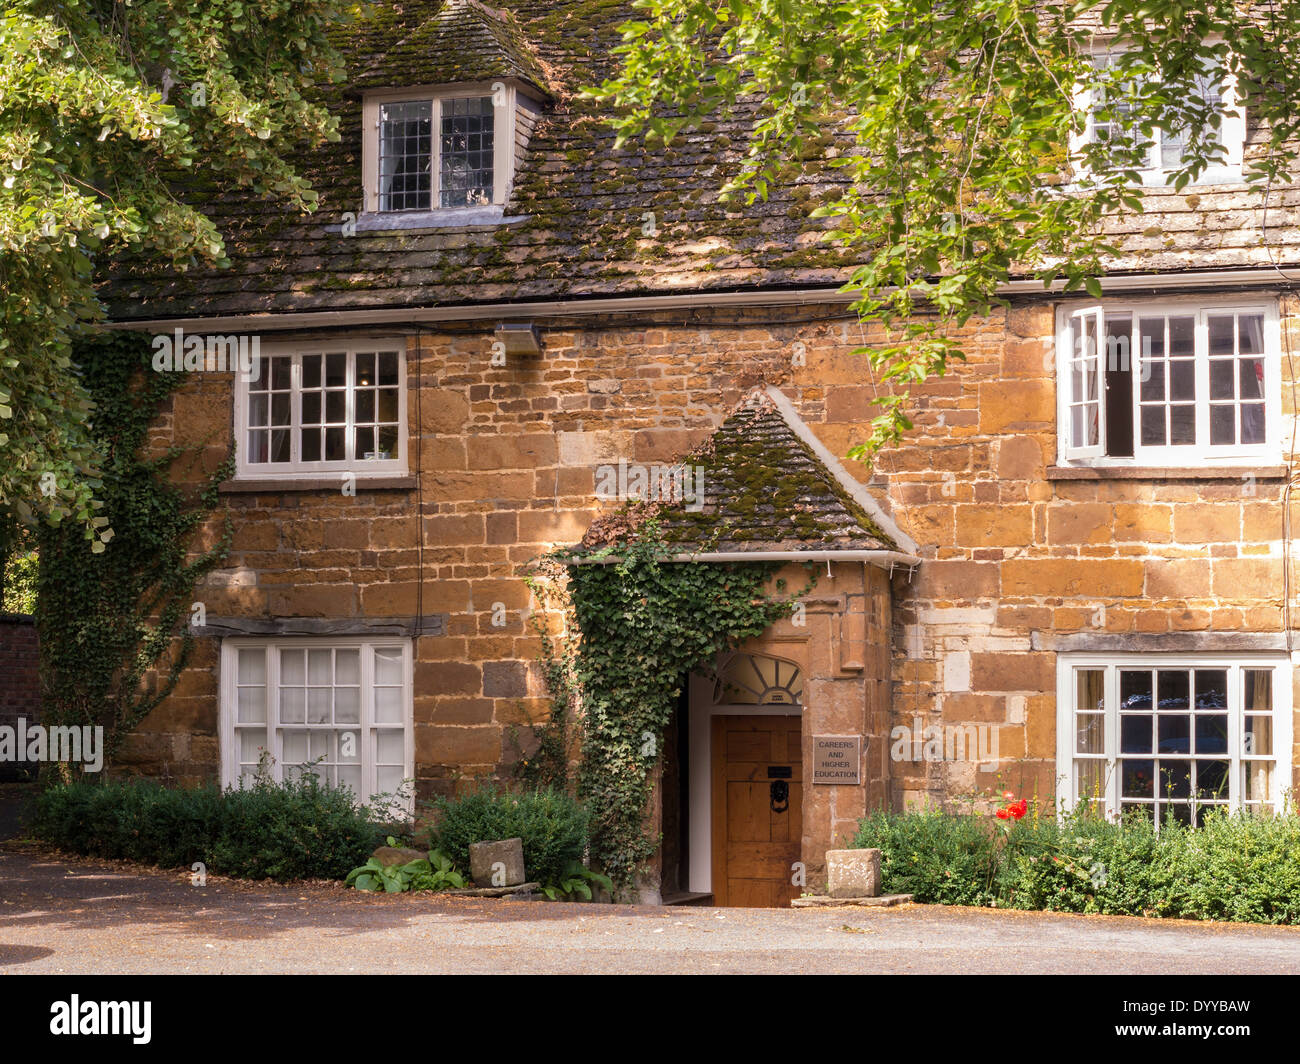 Careers and Higher Education Office in old stone cottage, Uppingham Private School, Rutland, England, UK - Stock Image